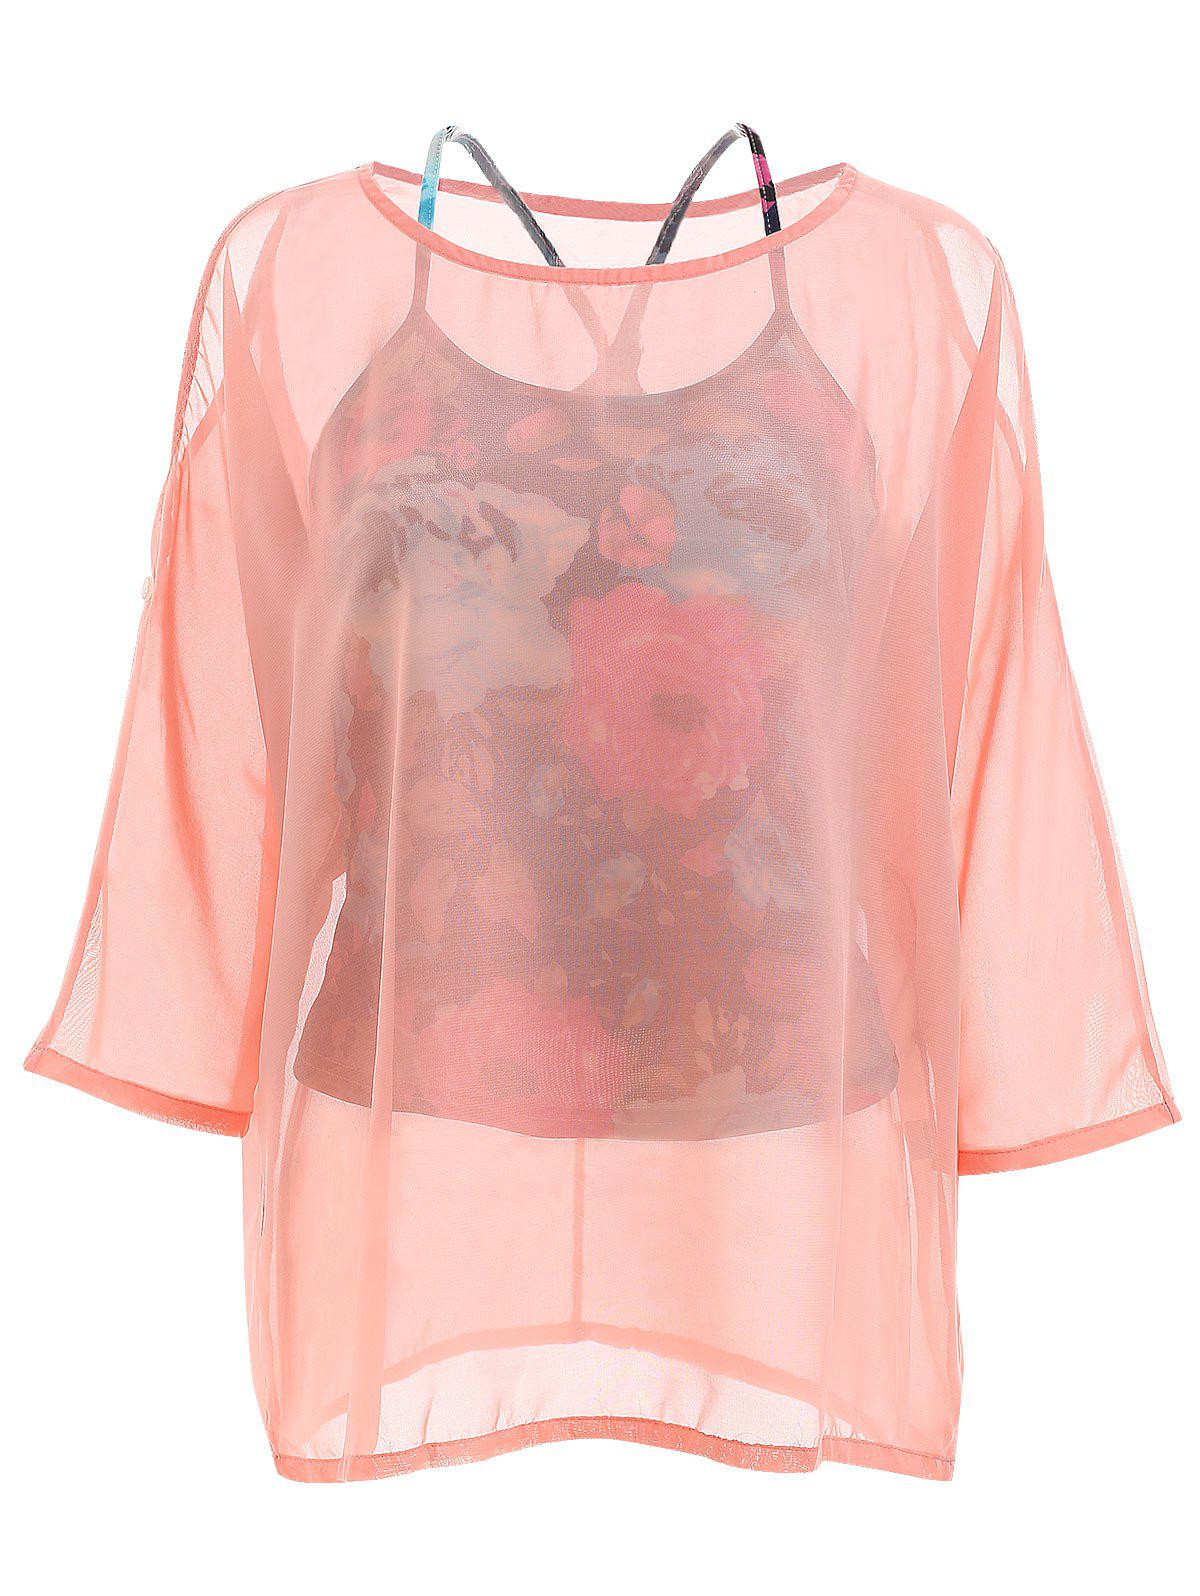 Elegant Off-The-Shoulder Long Sleeve Chiffon Blouse + Floral Print Vest Women's Twinset - PINK ONE SIZE